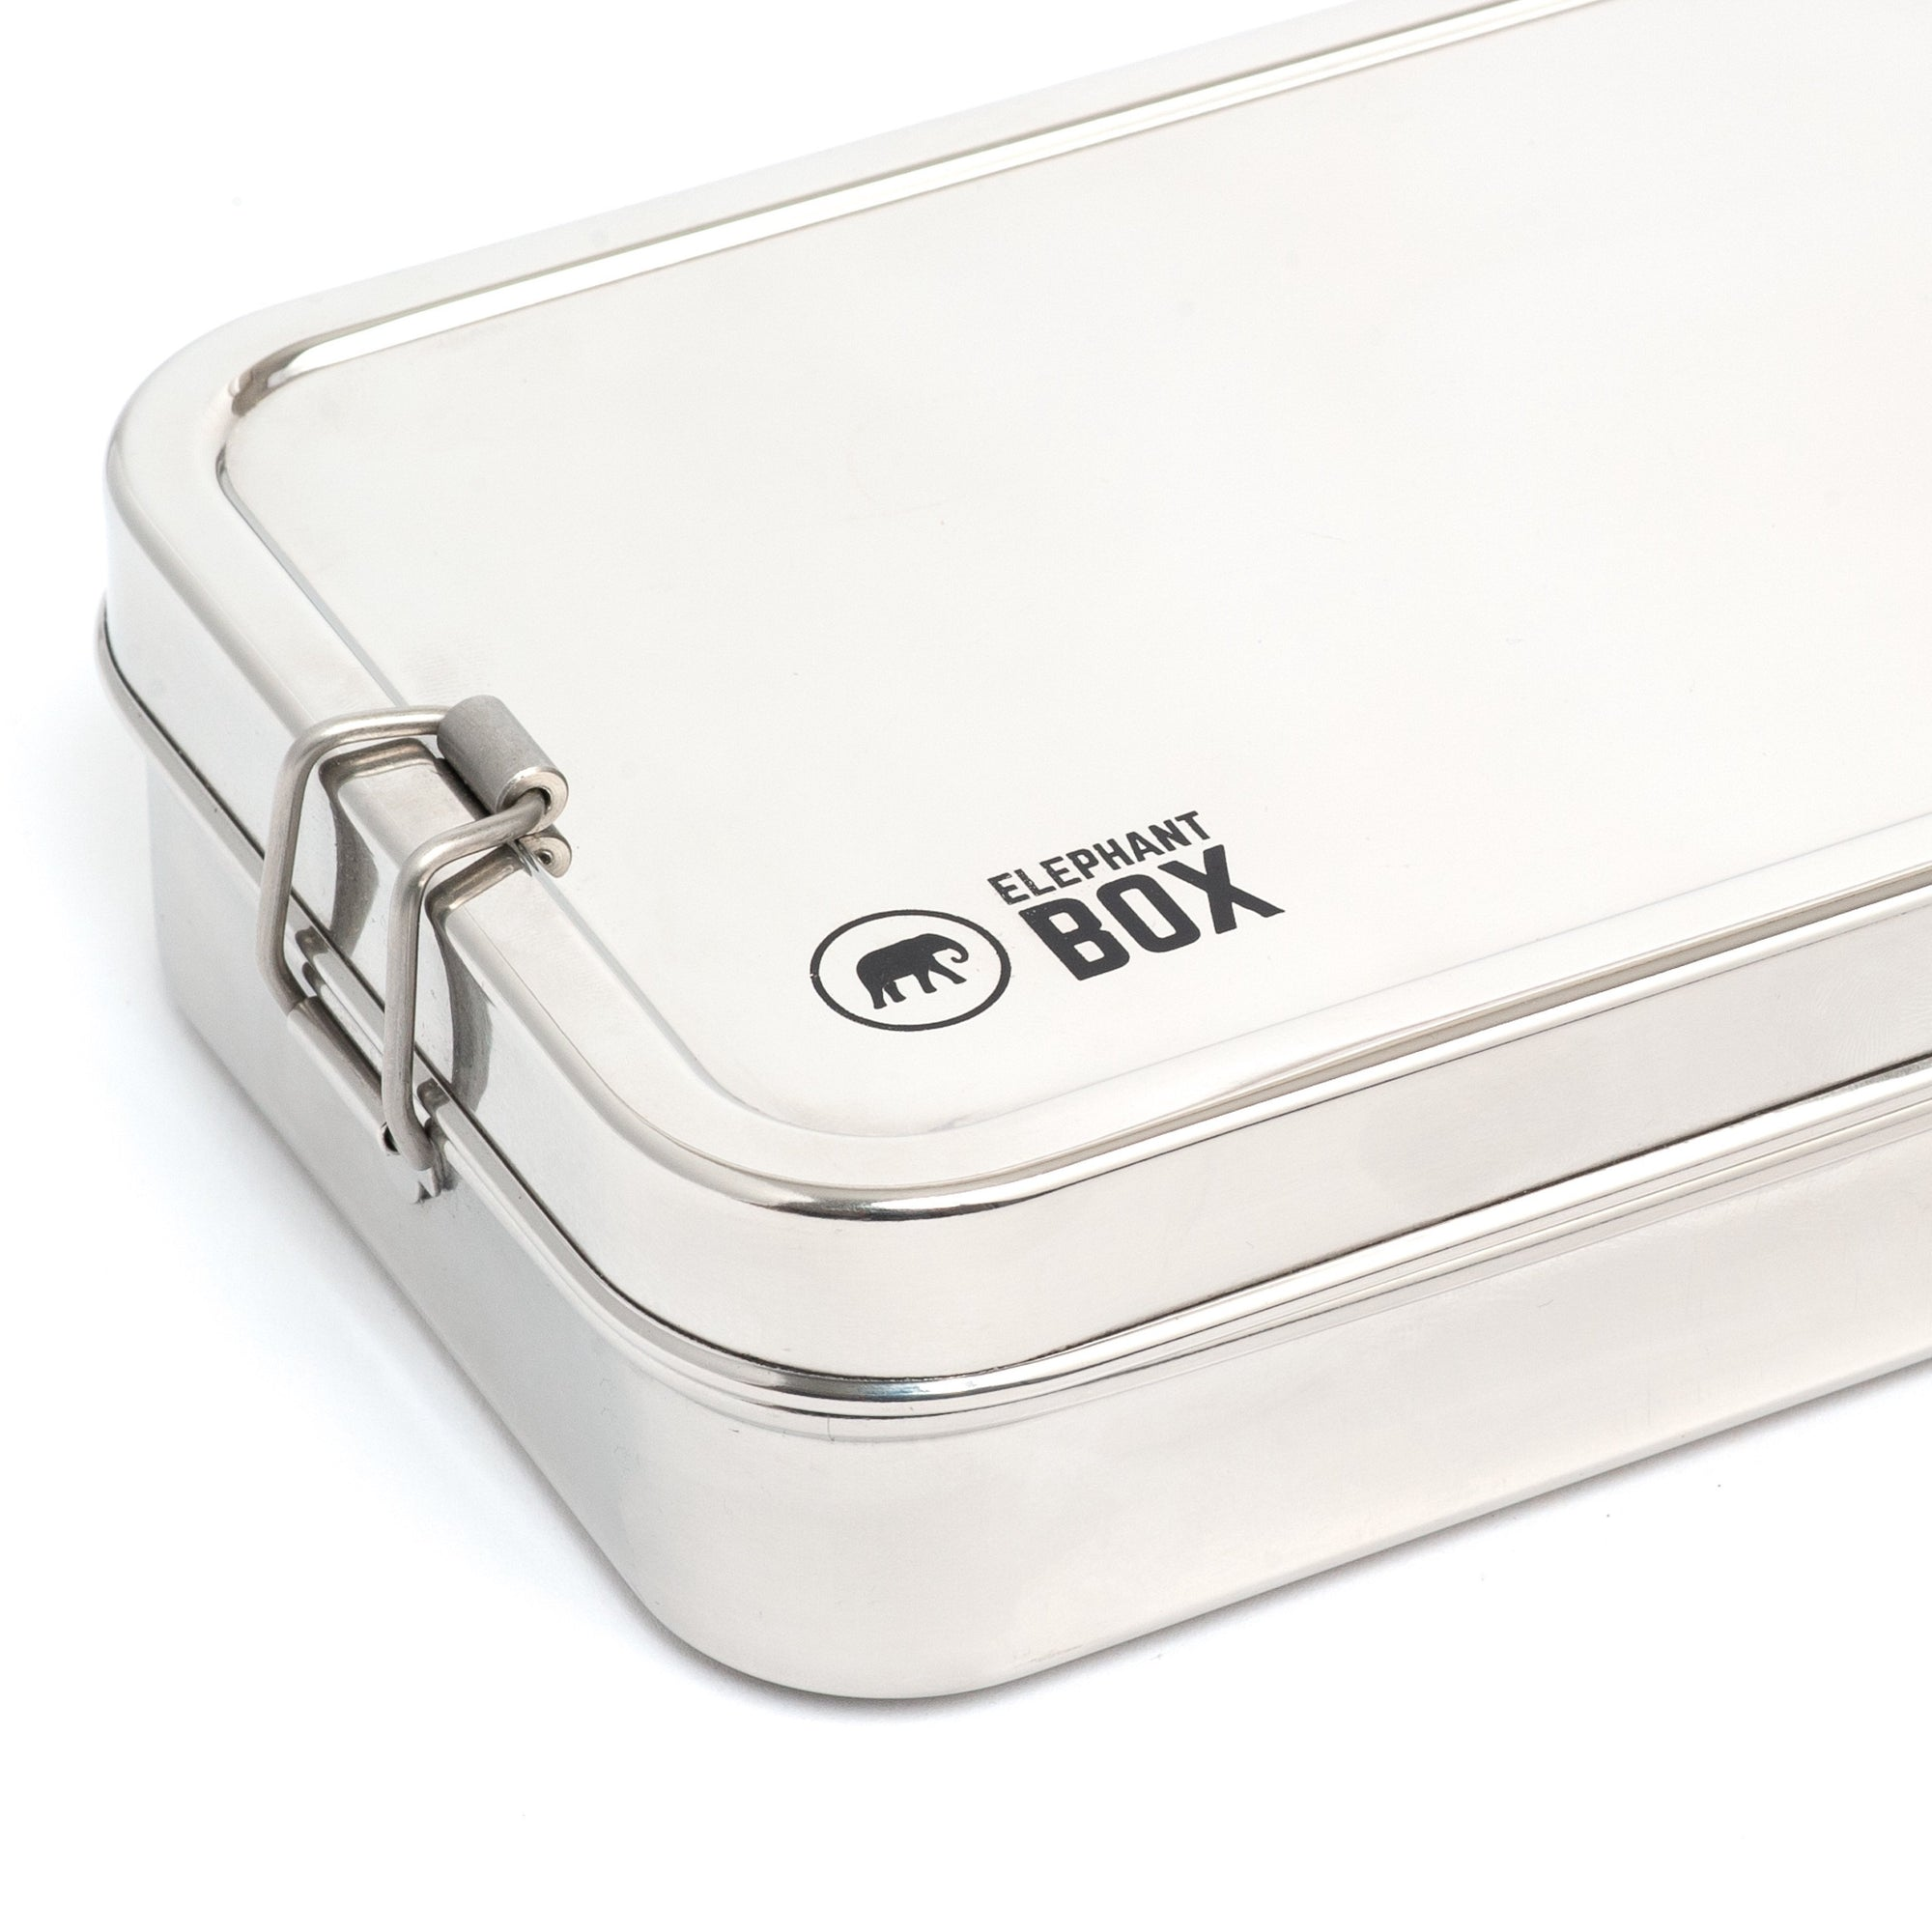 Smaller Stainless Steel Lunch Box - 800ml | Lunch Box - The Naughty Shrew